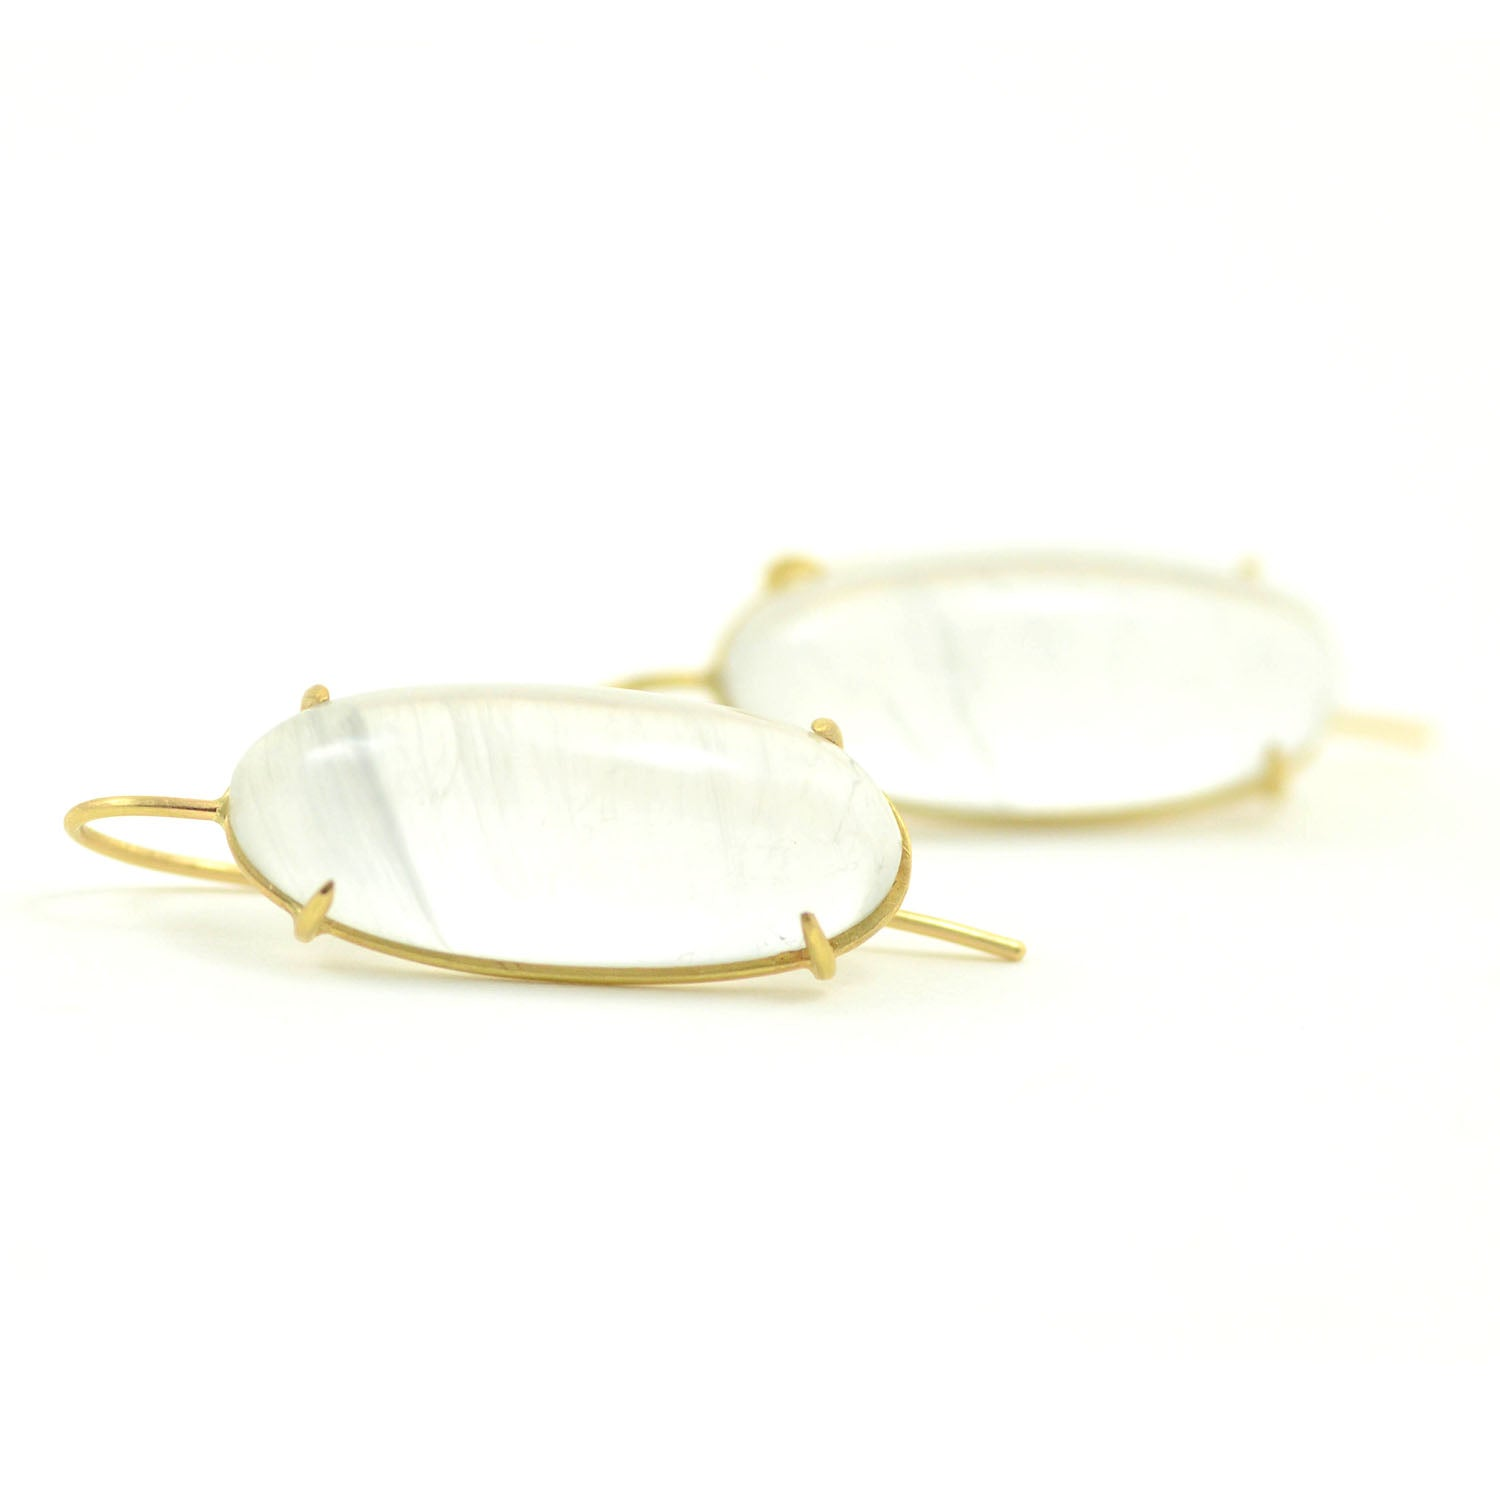 Rosanne Pugliese earrings of oval shapes luminous cabochon cut moonstones set in 18 karat yellow gold on minimalist earwires